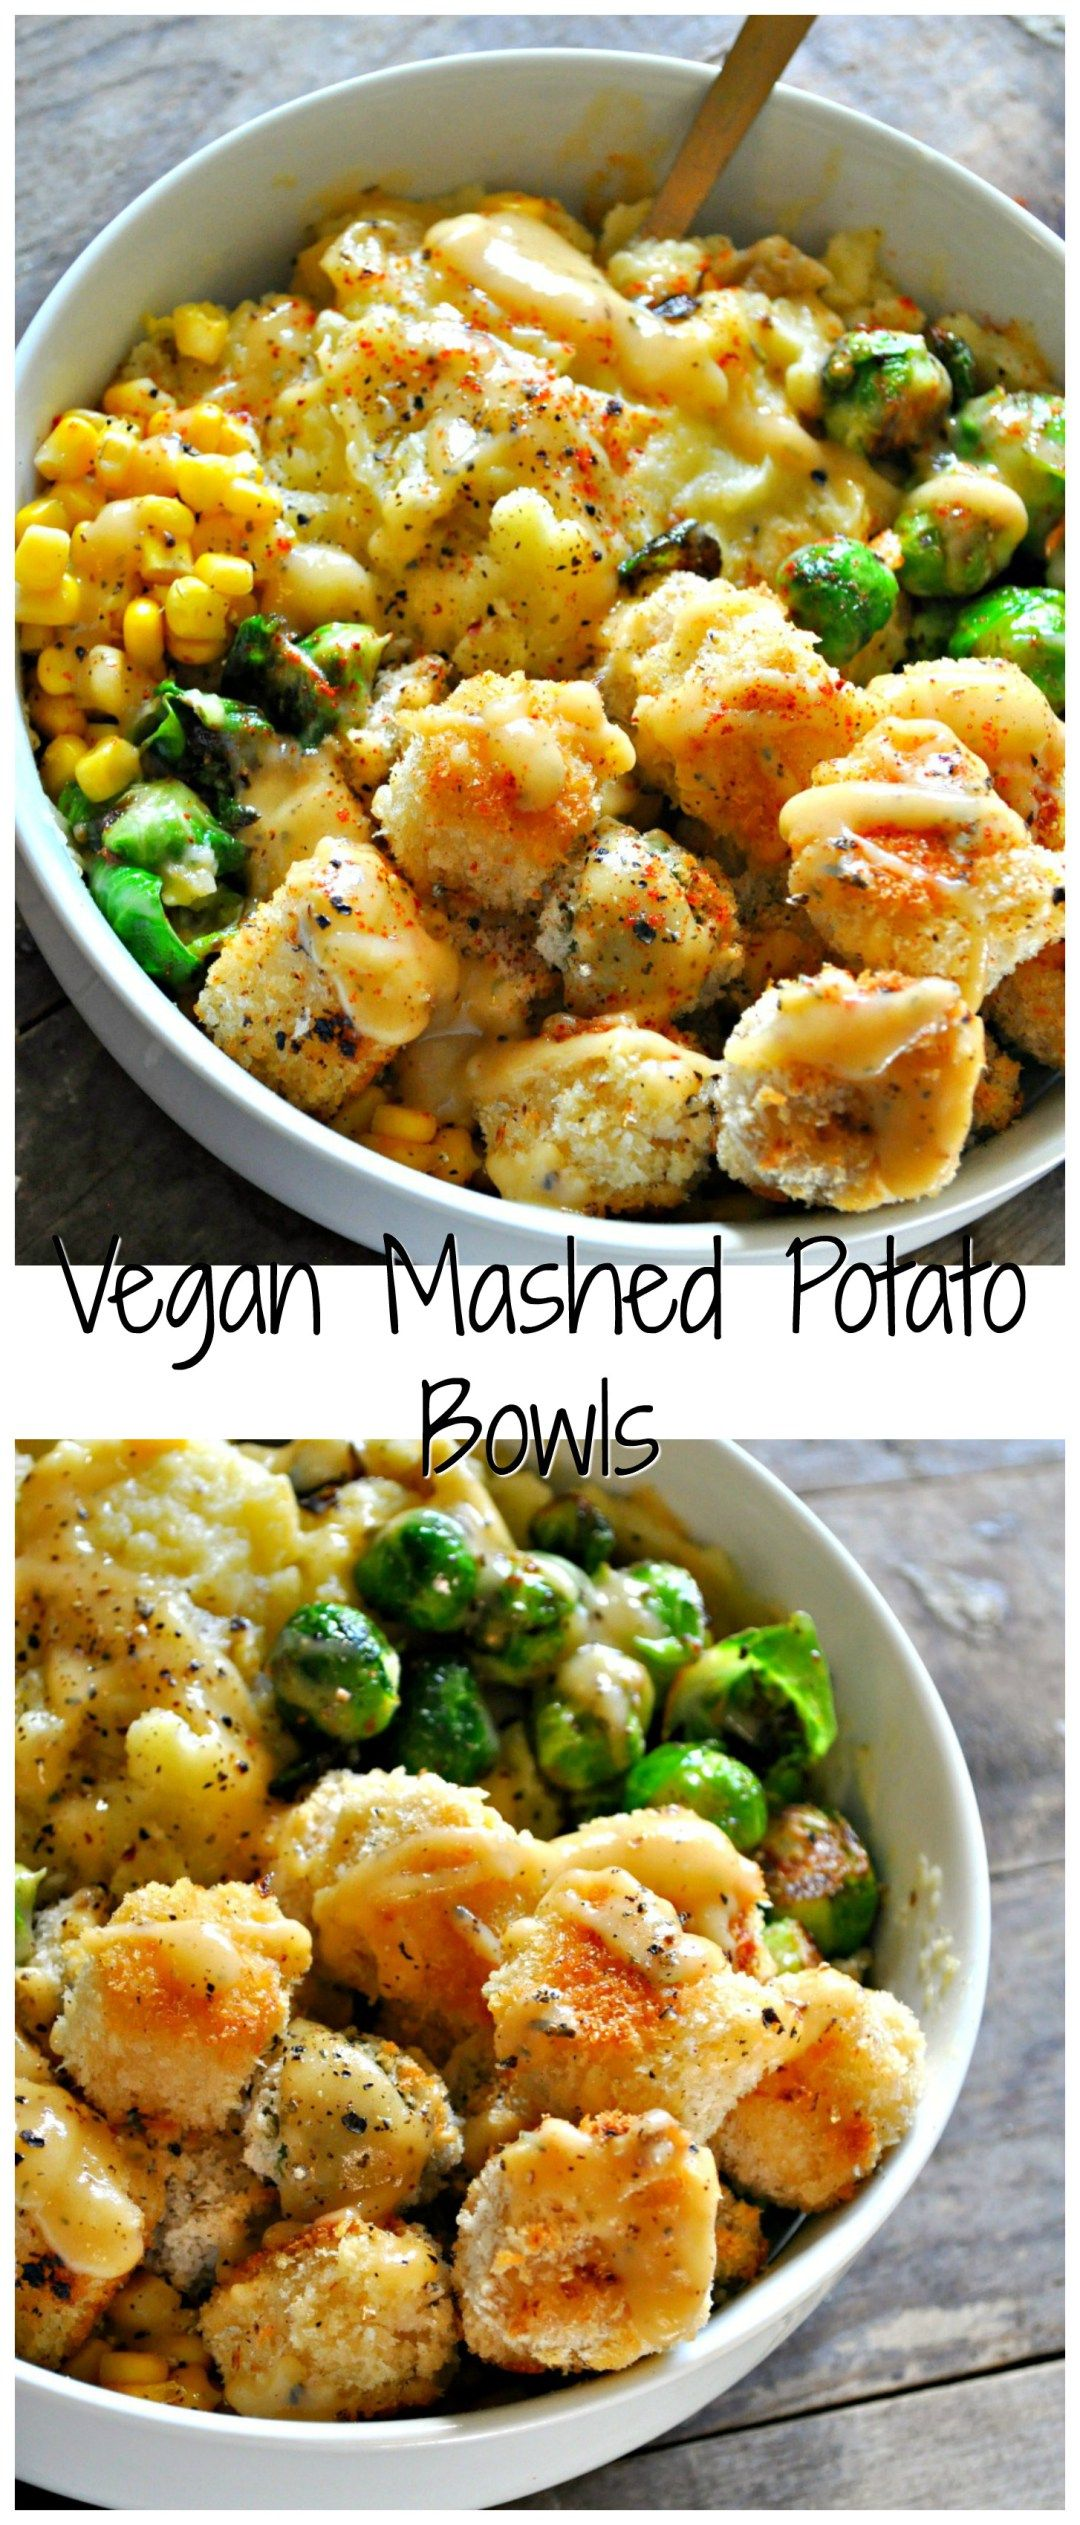 Photo of Vegan Mashed Potato Bowls